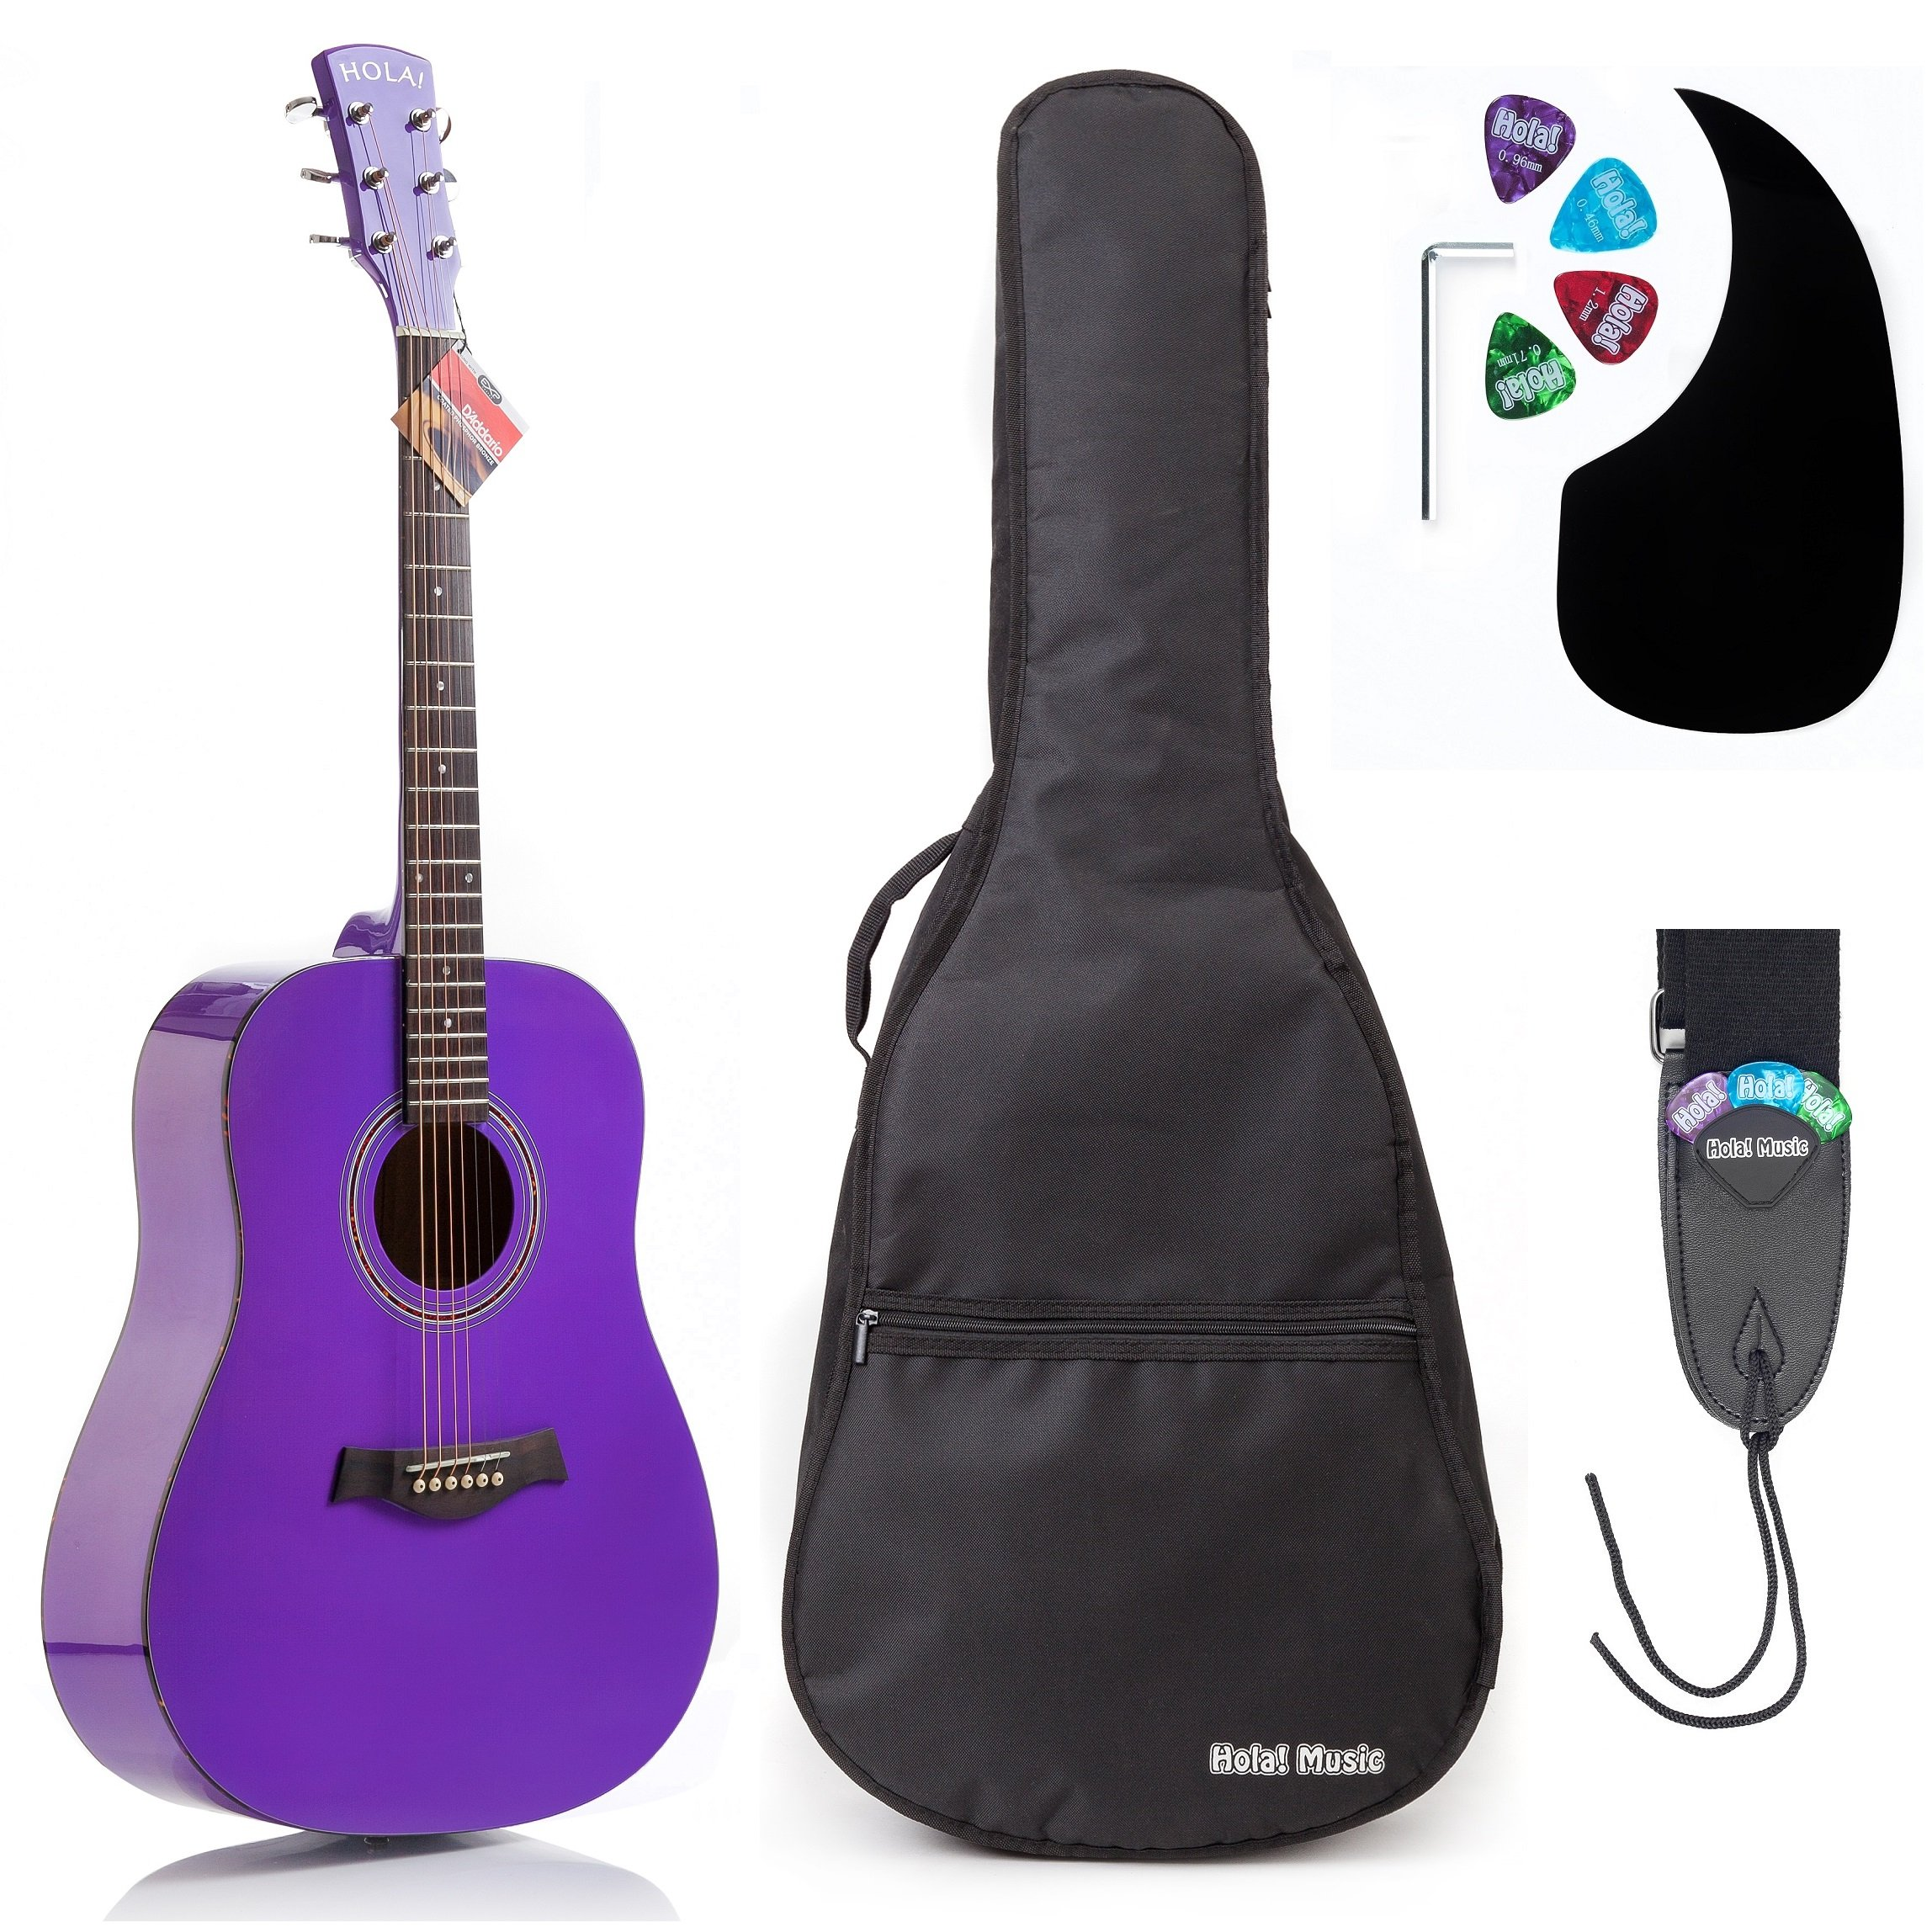 Acoustic Guitar Bundle Dreadnought Series by Hola! Music with D'Addario EXP16 Steel Strings, Padded Gig Bag, Guitar Strap and Picks, Full Size 41 Inch (Model HG-41PP), Purple by Hola! Music